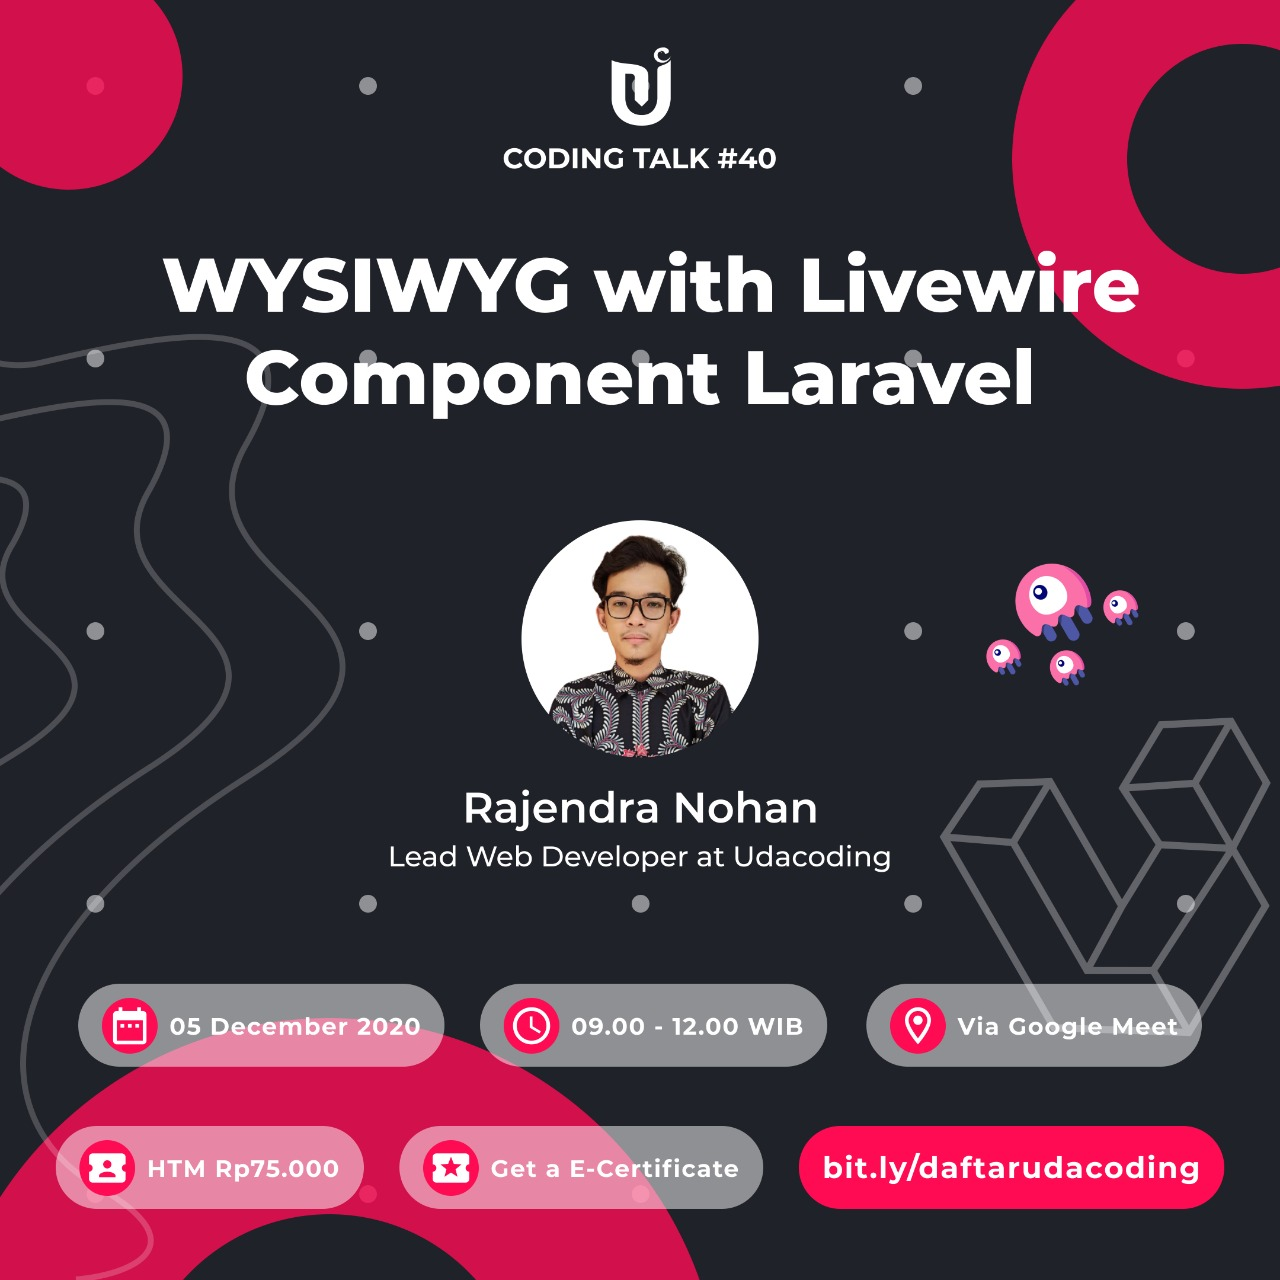 Implement WYSIWYG with Livewire Component Laravel